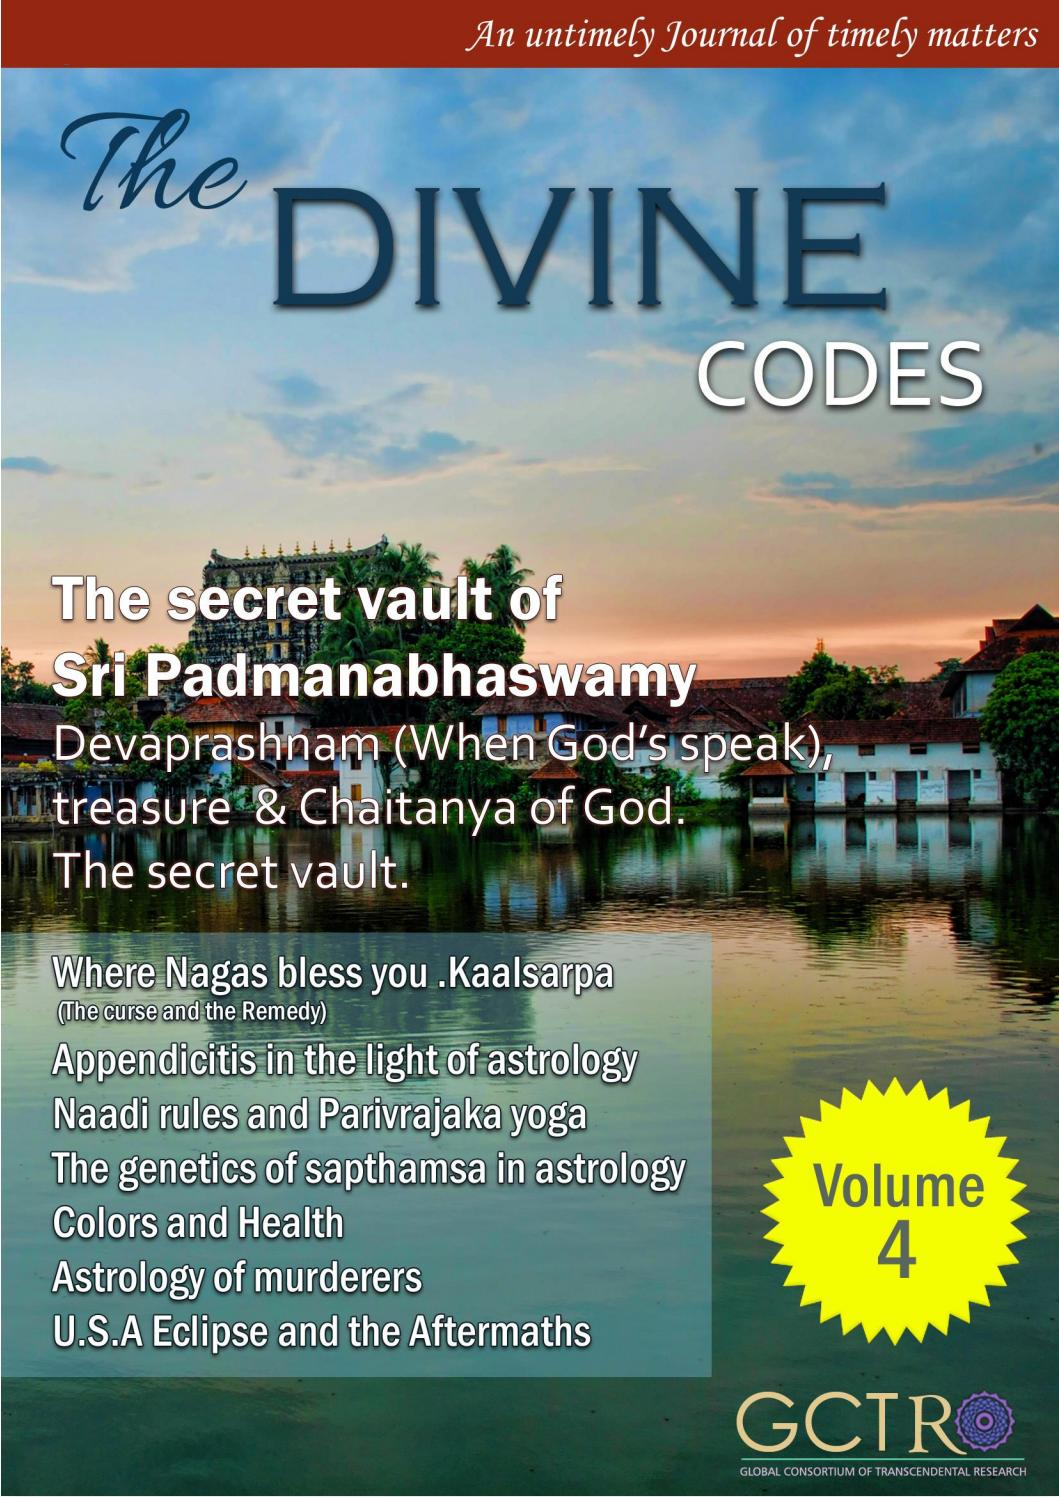 The divine codes   Volume 4  issue 1 by The Vedicsiddhanta